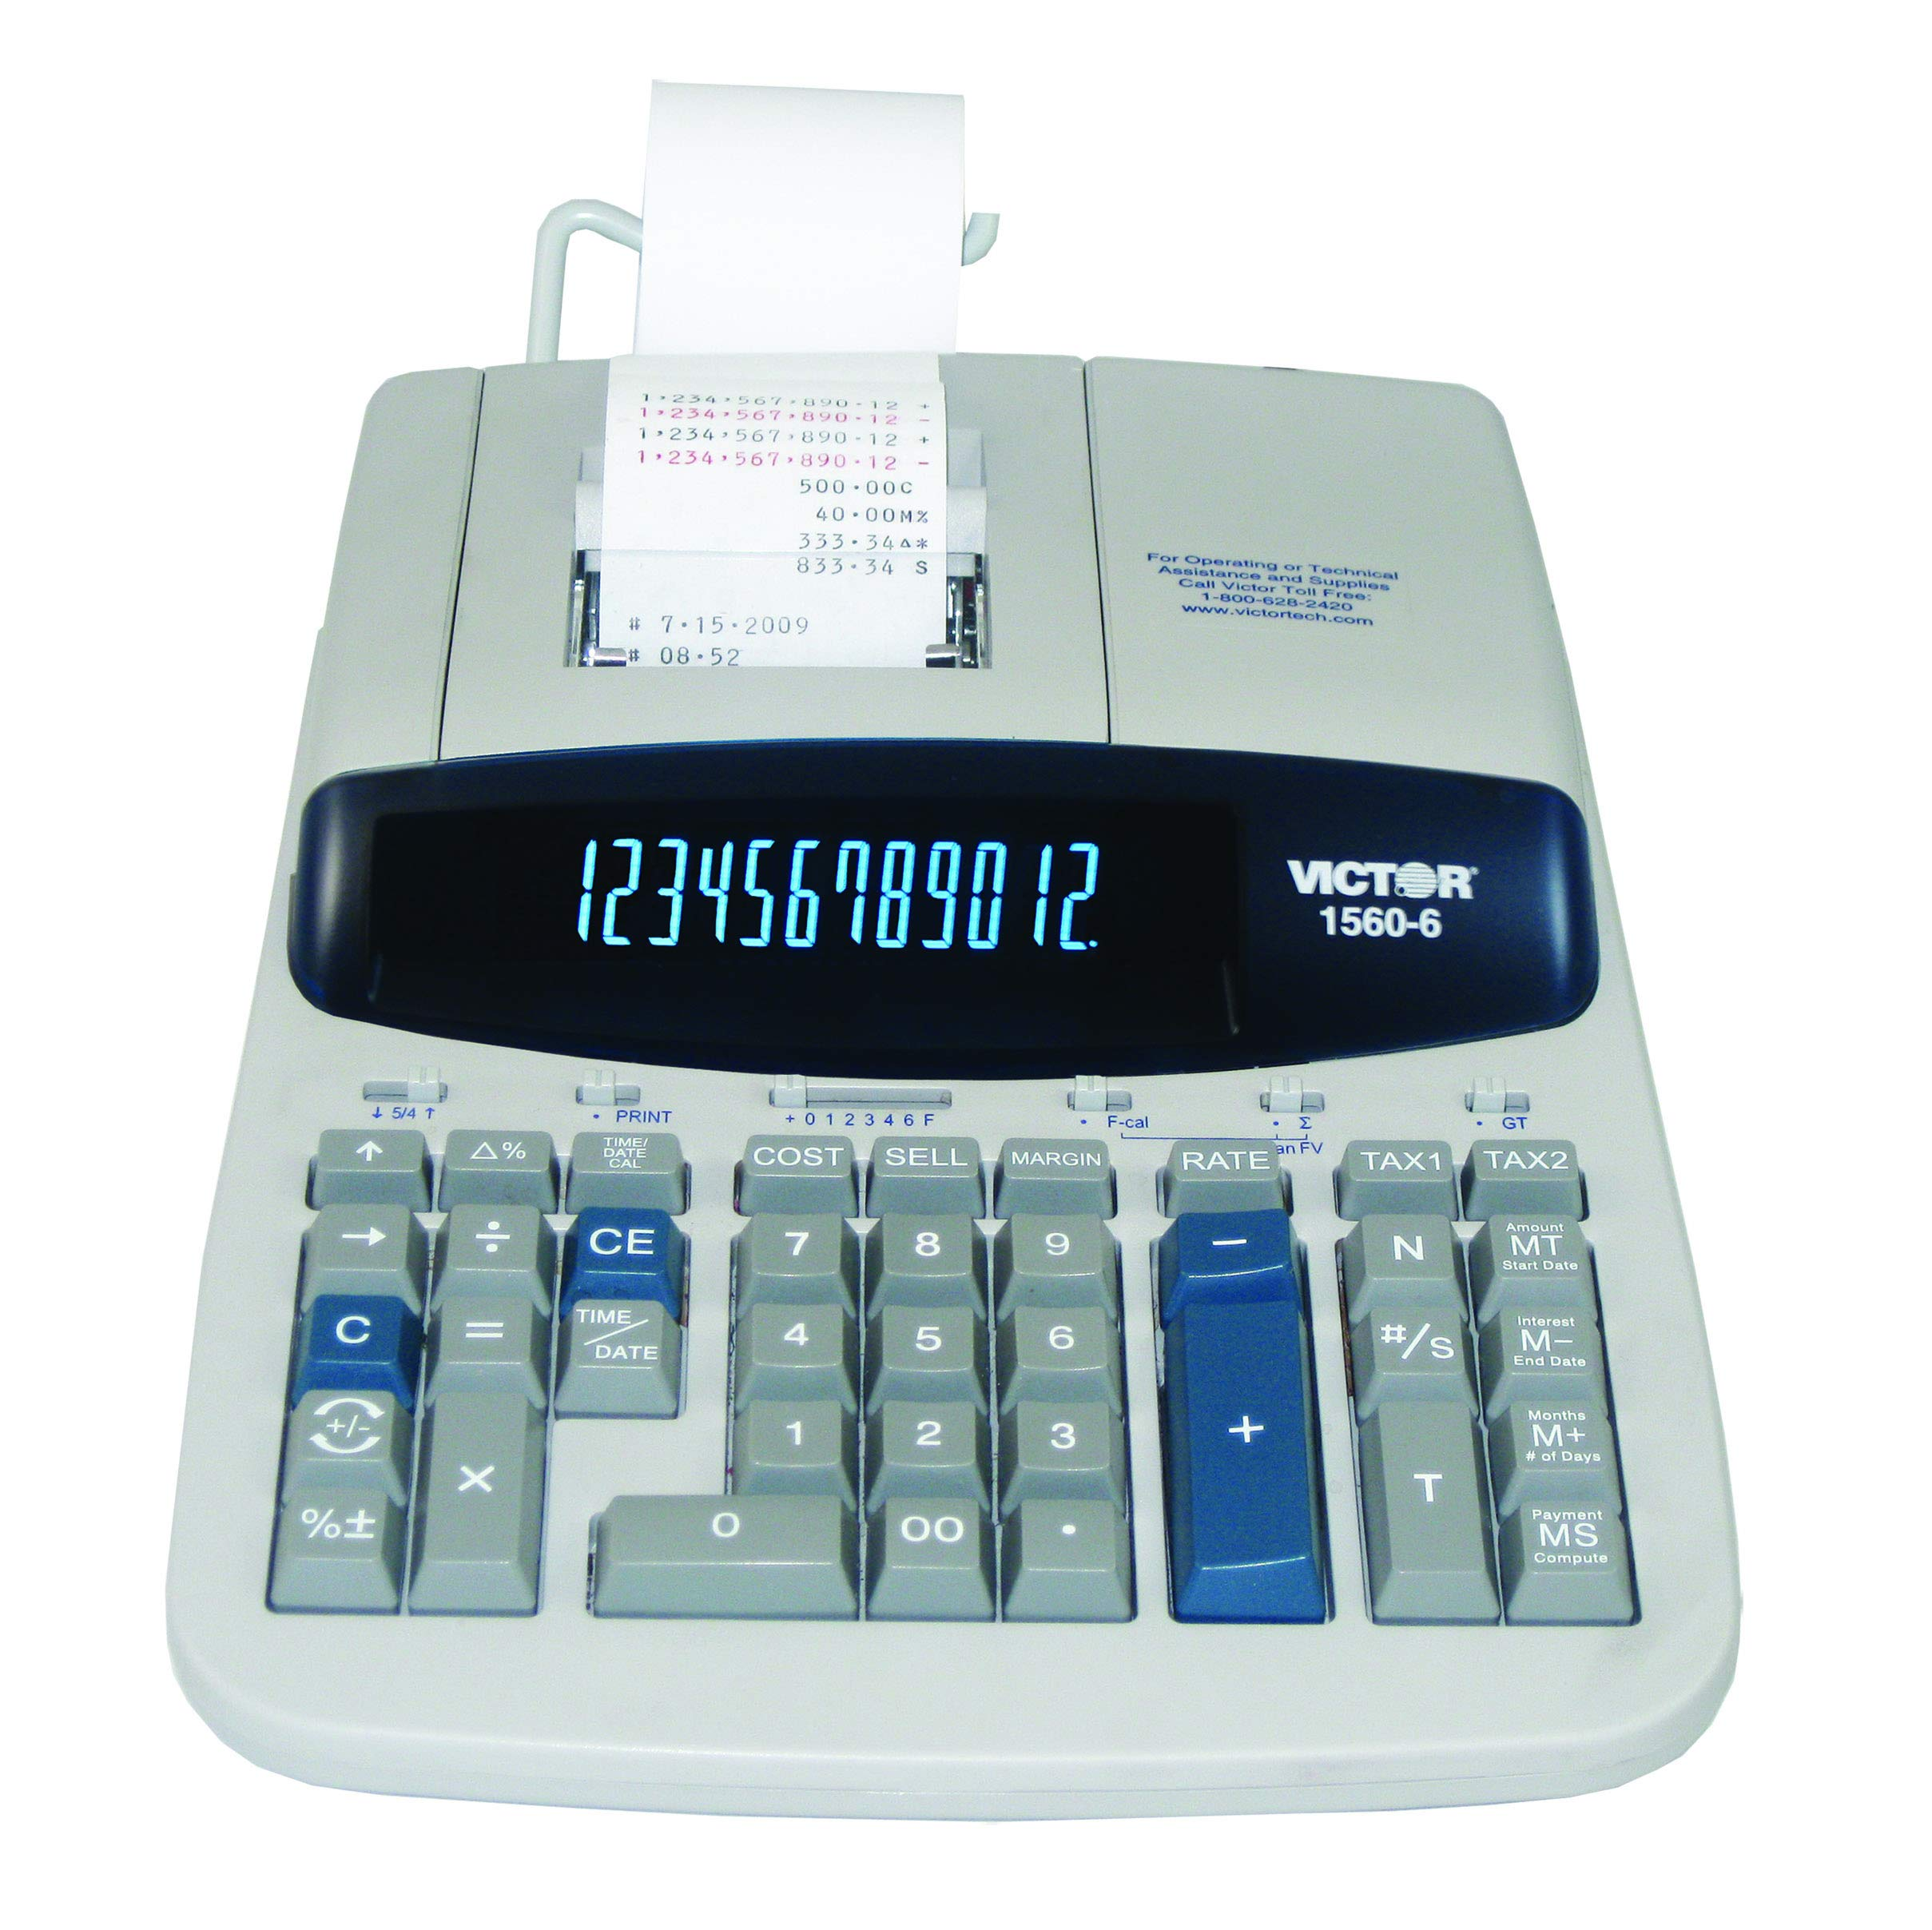 Victor 1560-5 12 Digit Heavy Duty Commercial Printing Calculator by Victor (Image #1)